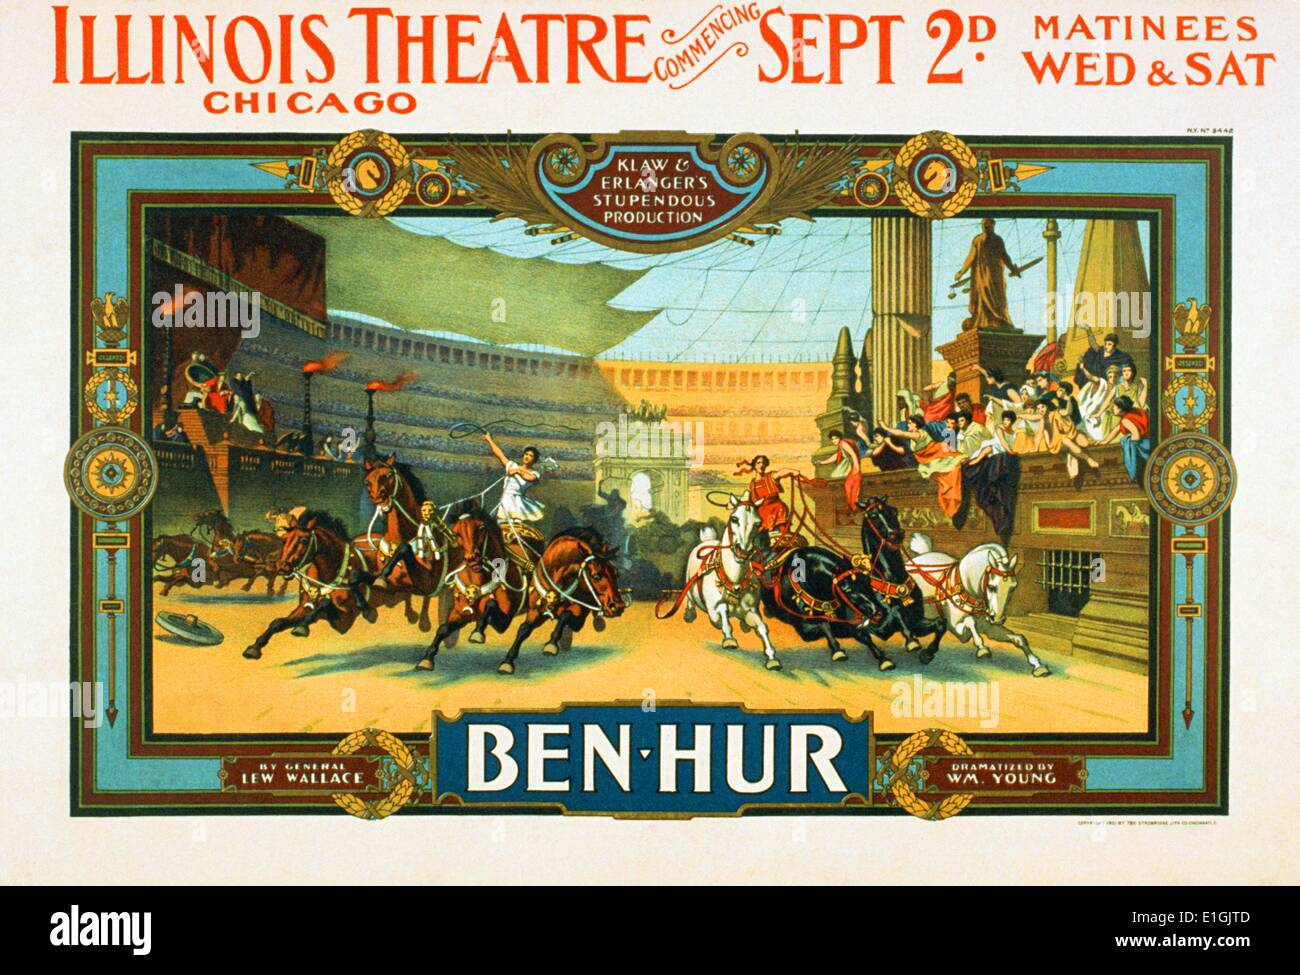 'Ben Hur', the 1959 epic of all biblical epics starring Charlton Heston and Jack Hawkins. - Stock Image